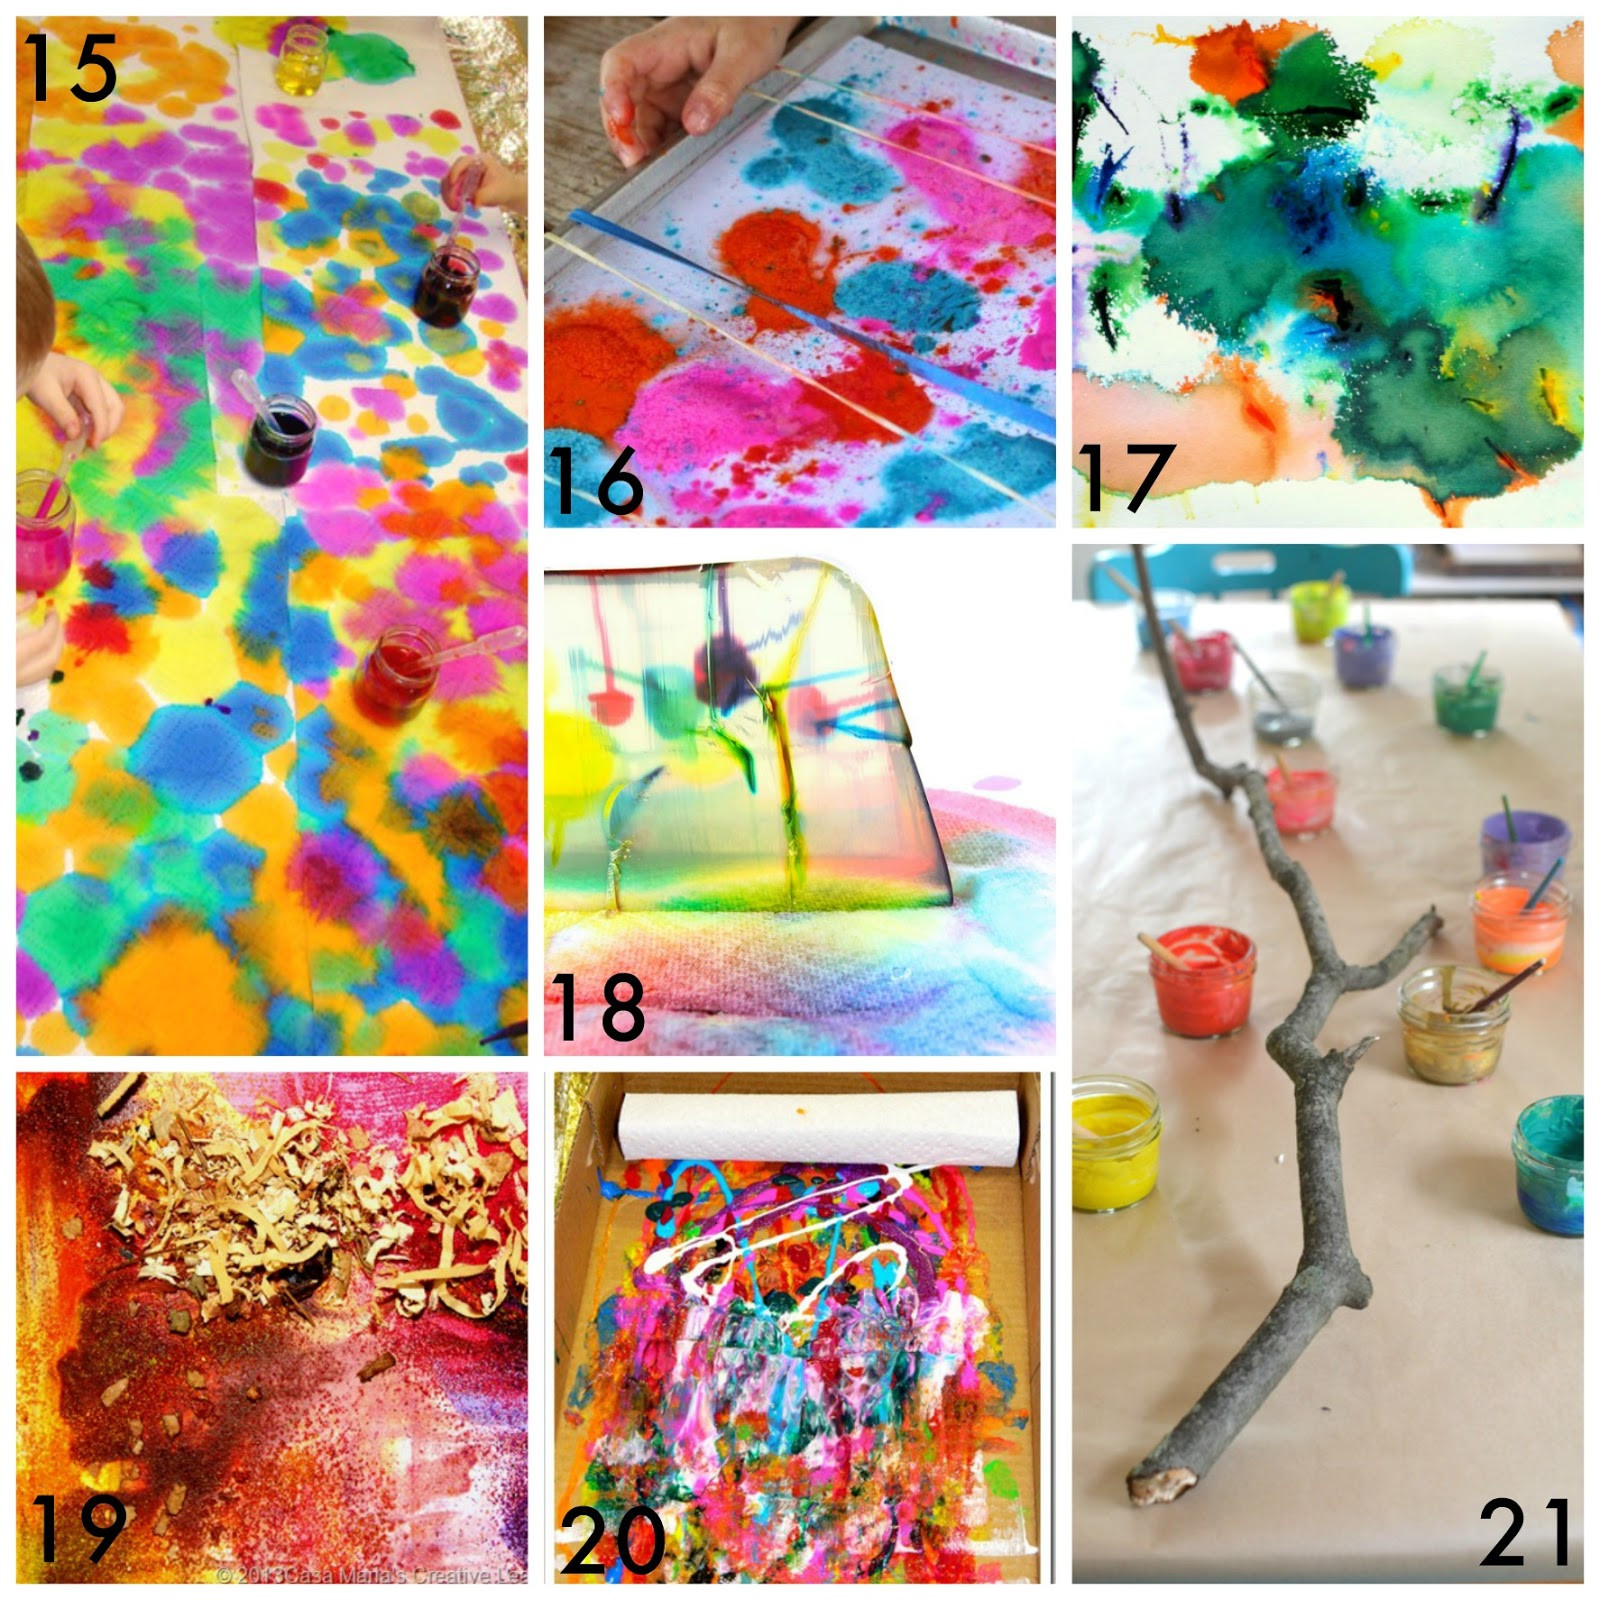 Best ideas about Creative Art Activities For Preschoolers . Save or Pin 50 Easy Process Art Activities for Kids Now.